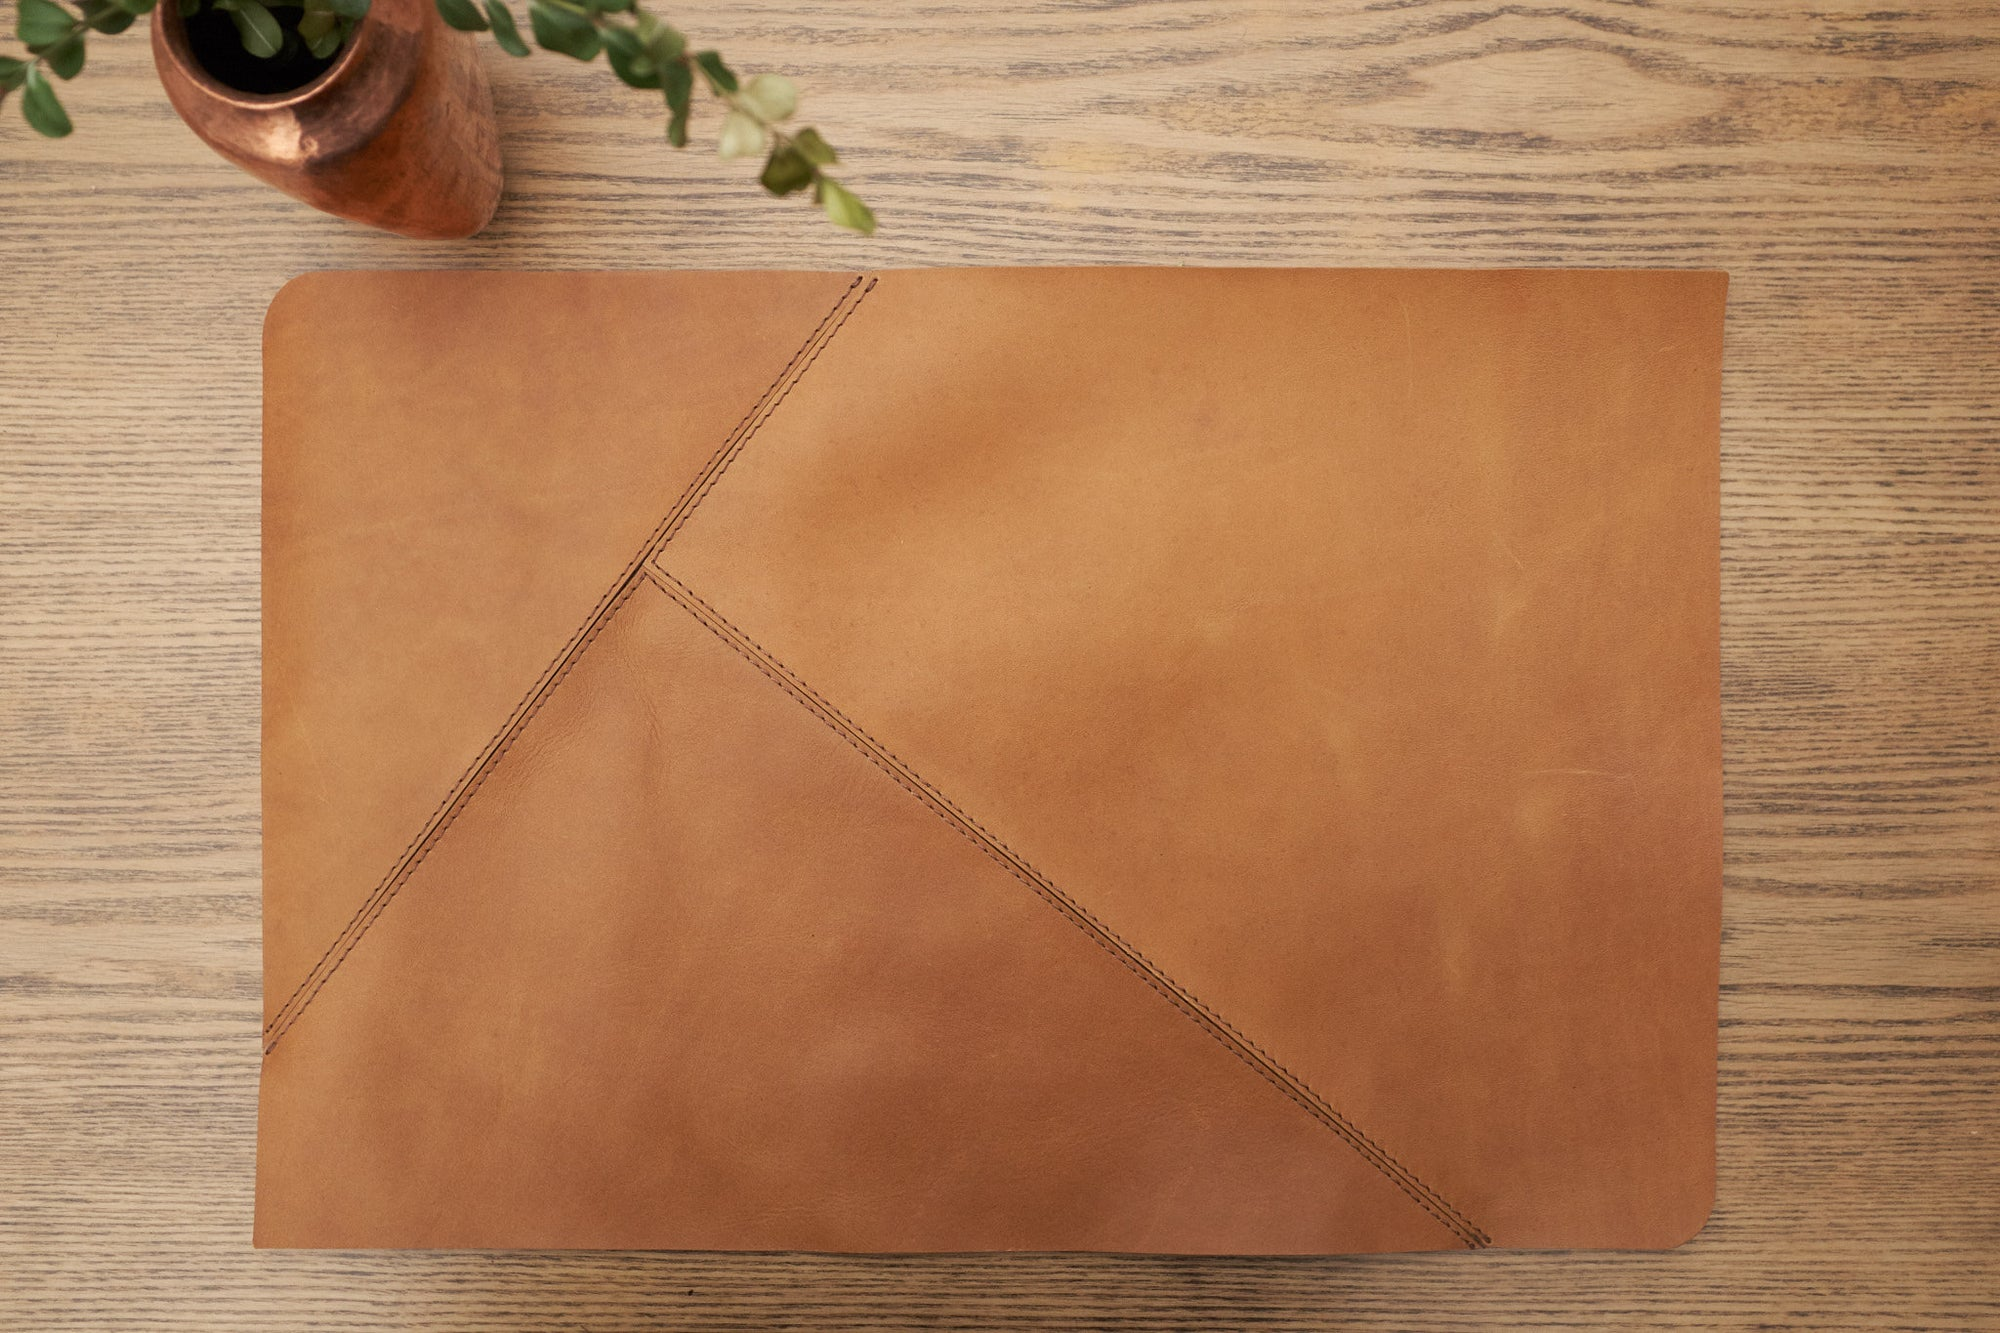 Cover. Leather Placemat Set Tan by Modoun Home Decor